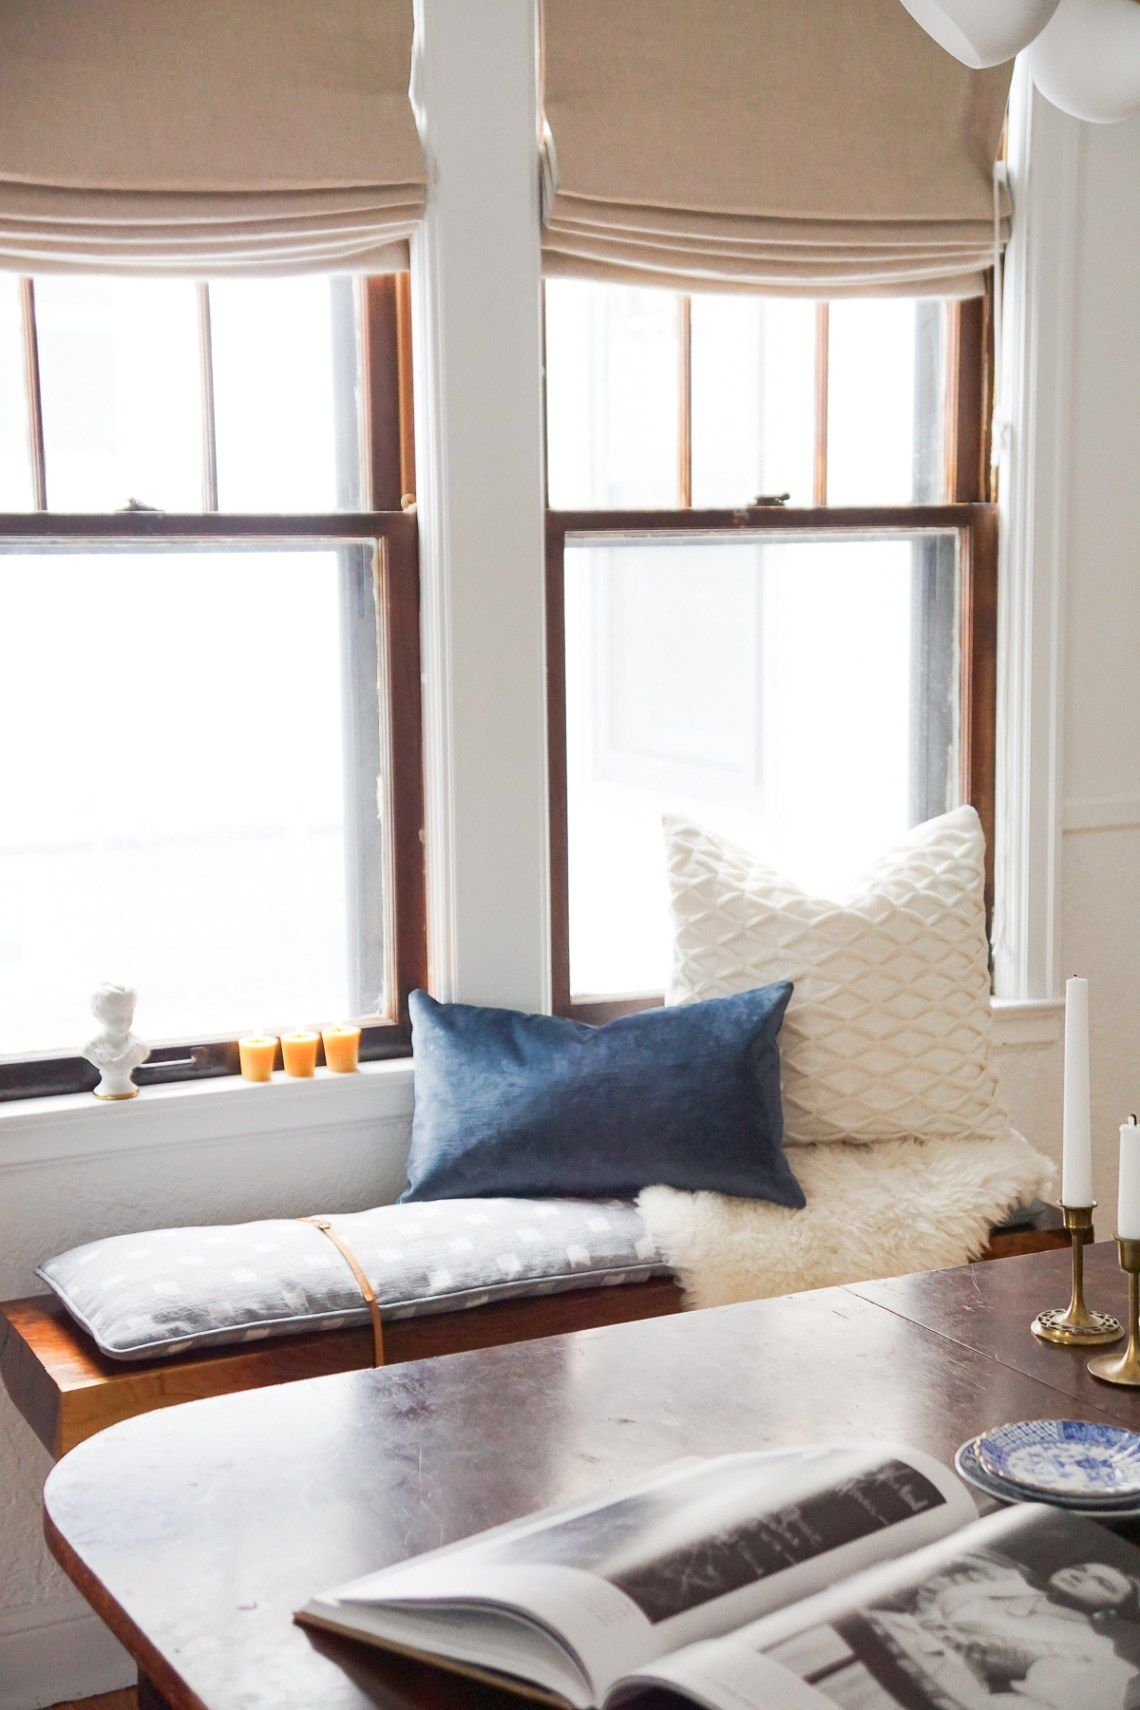 Diy Modern Bench Cushion With Leather Straps Bench Cushions